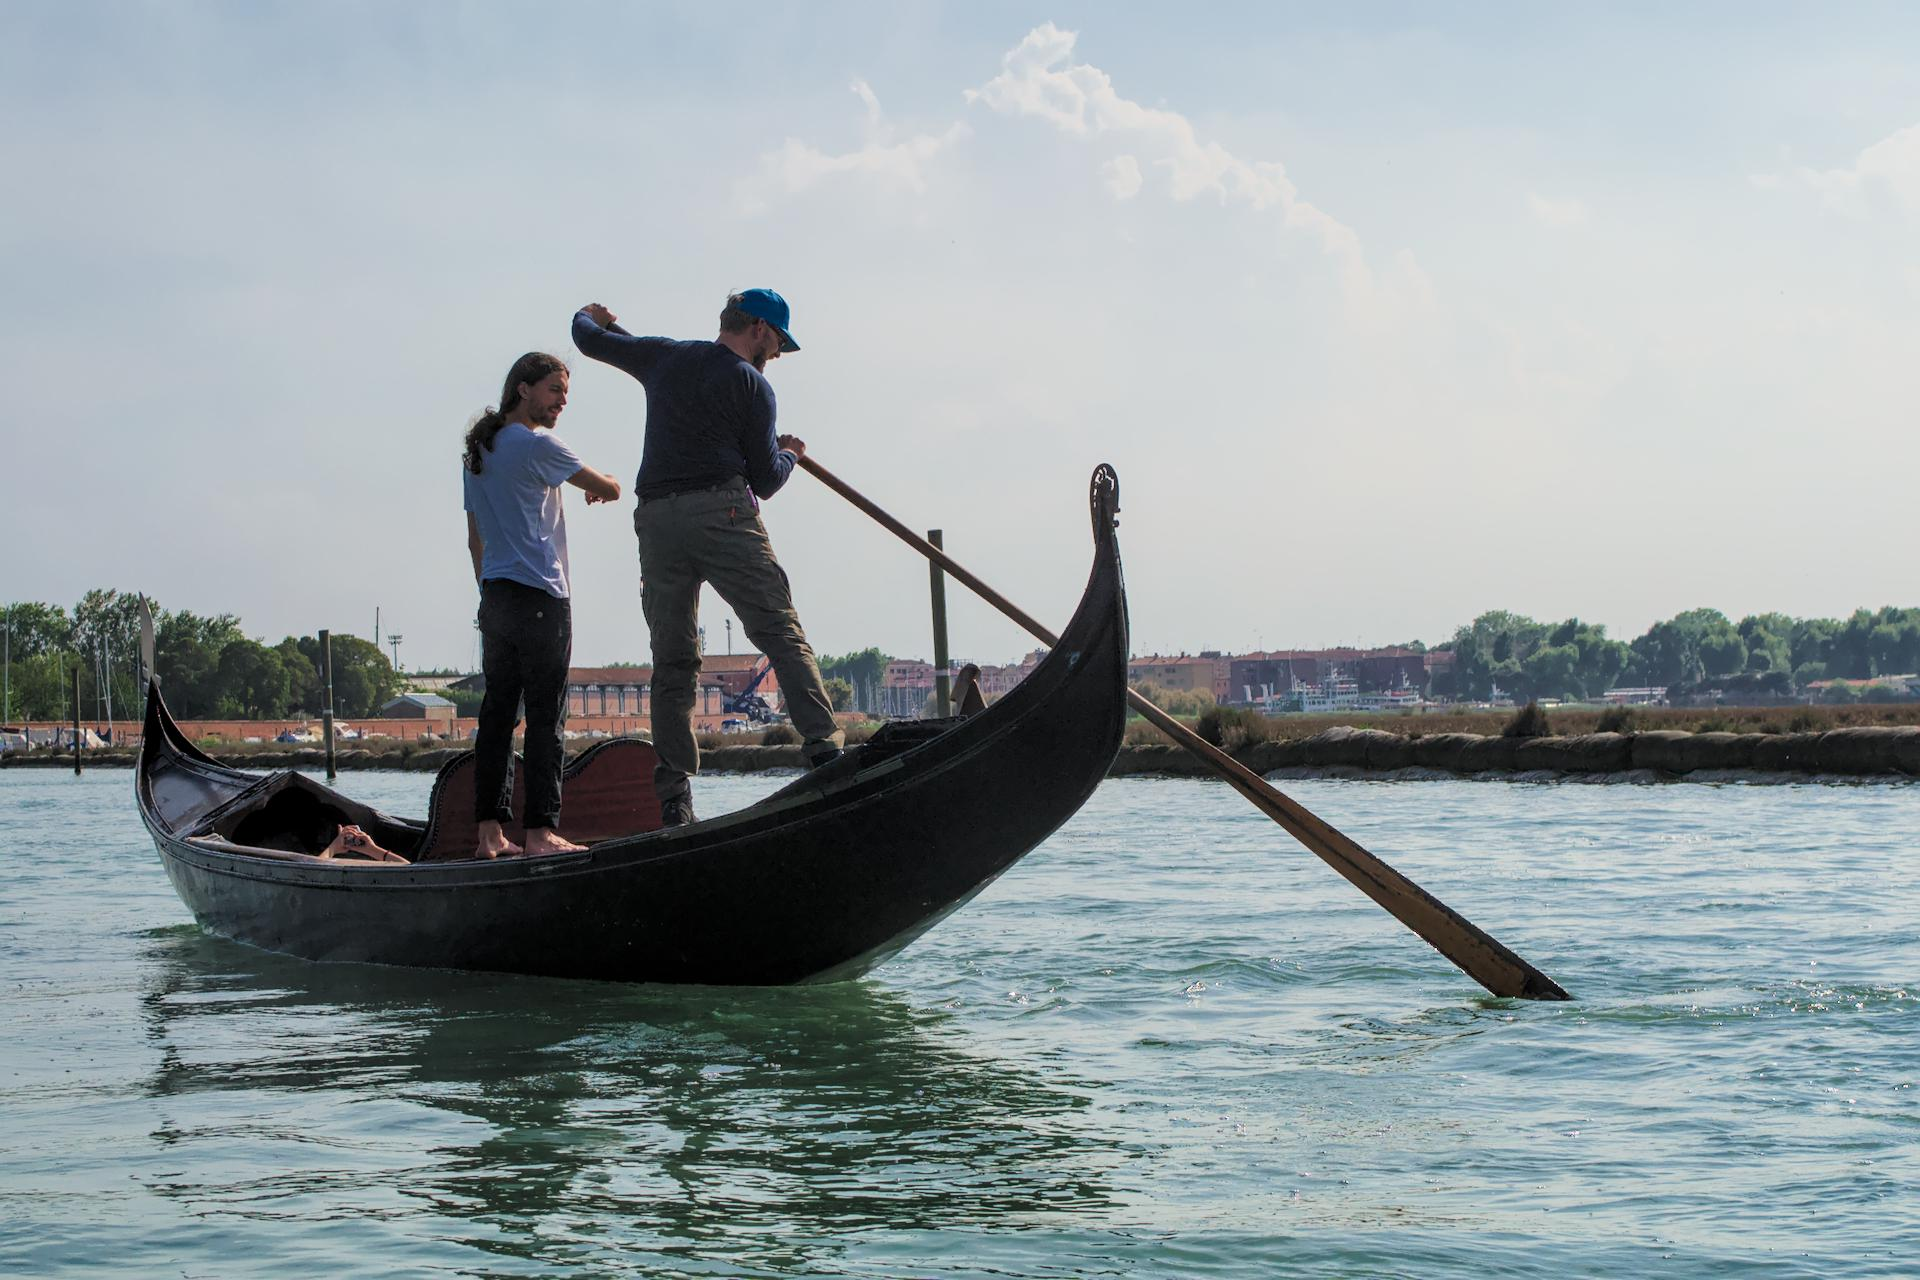 Rowing a gondola is not easy, but it can be learned